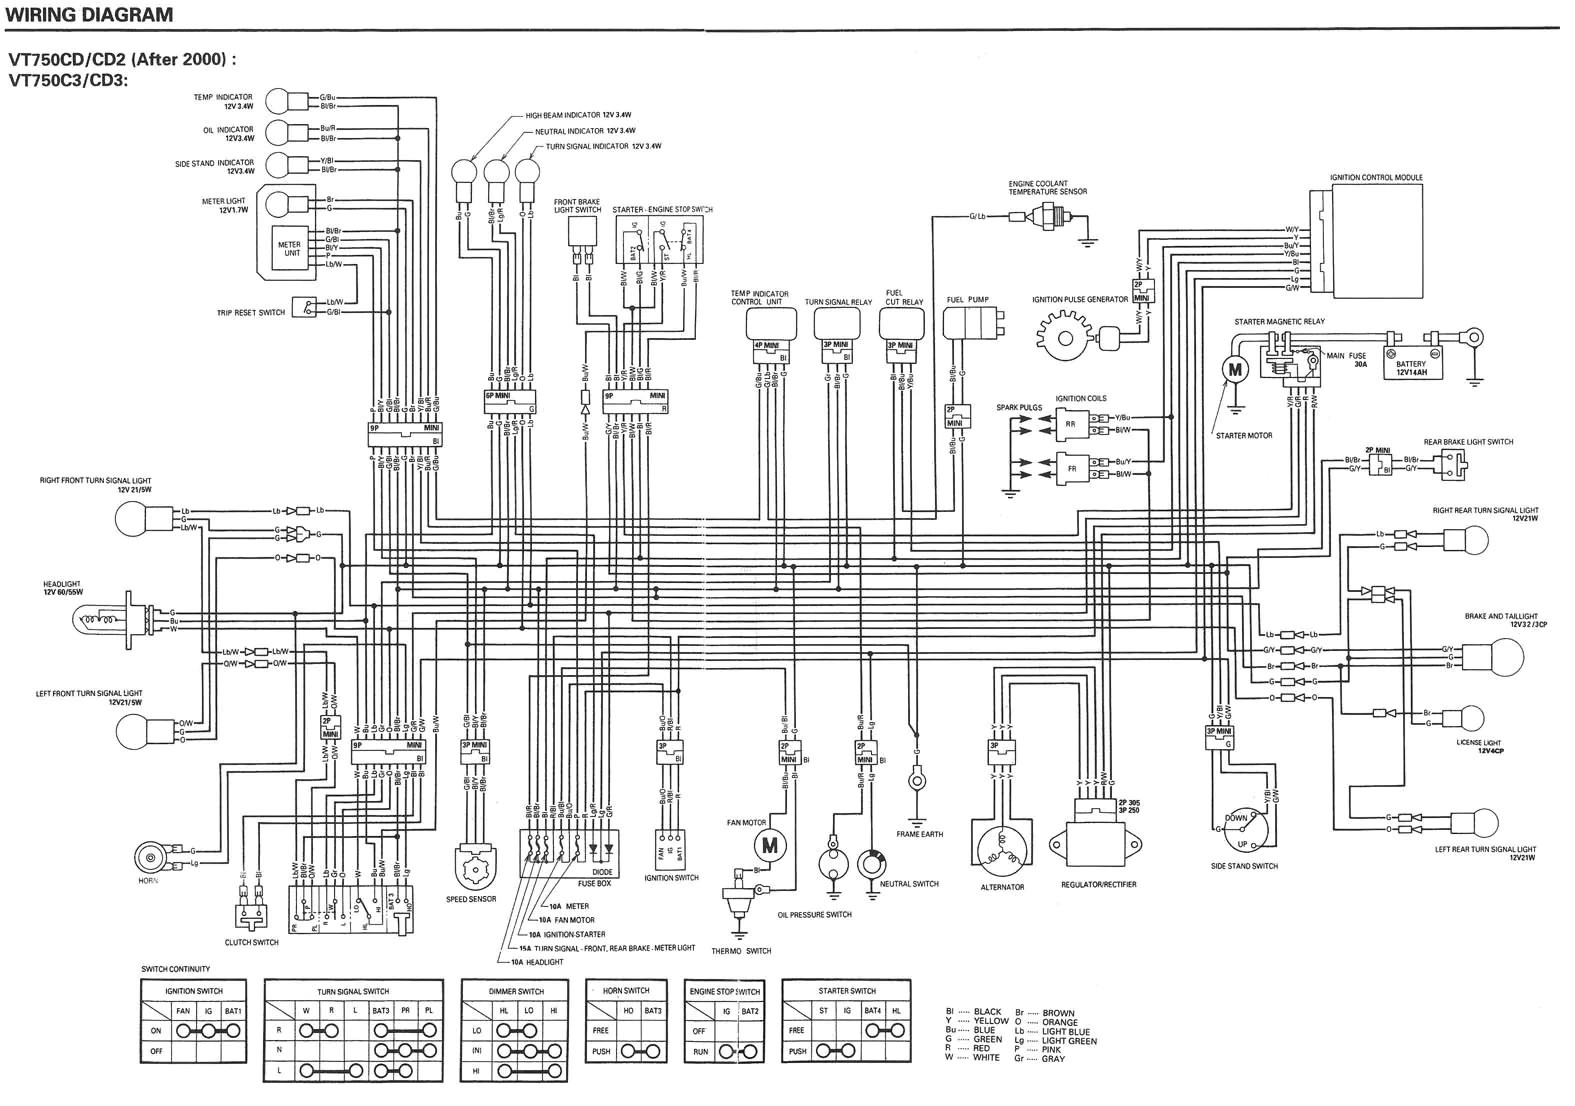 medium resolution of ace wiring diagram wiring diagram home ace frehley wiring diagram